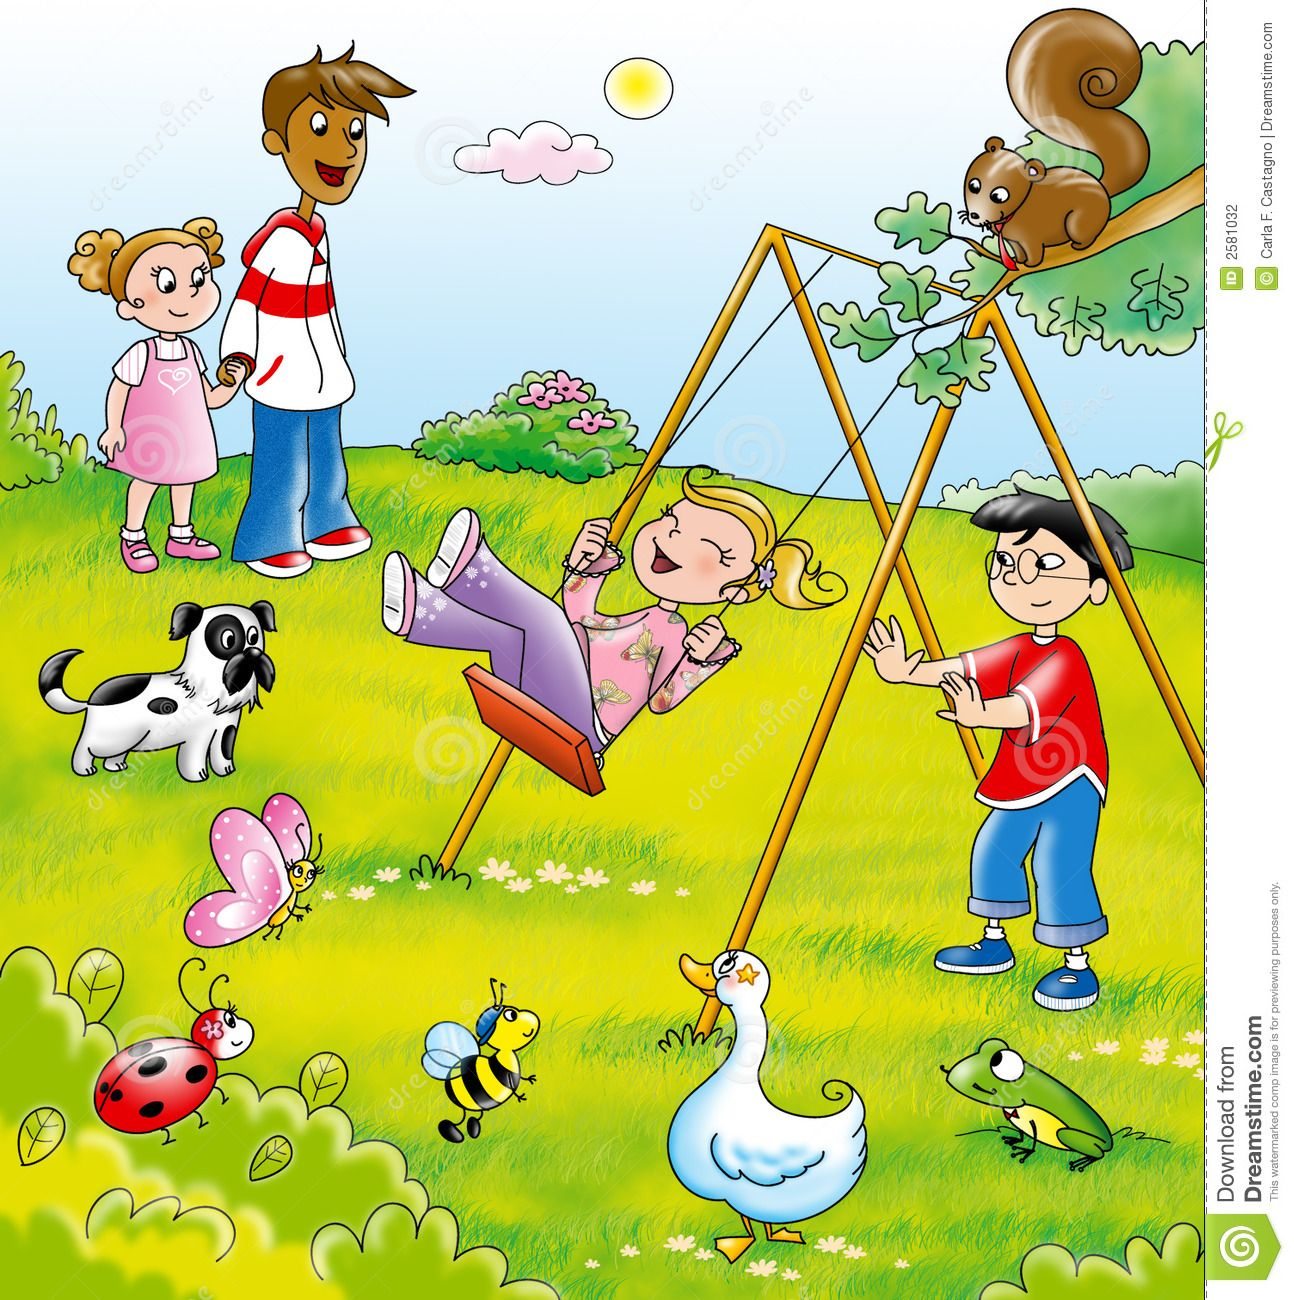 Kids playing in the park clipart png Kids in a park | Girl Scouts Ideas | Cartoon kids, Kids playing ... png